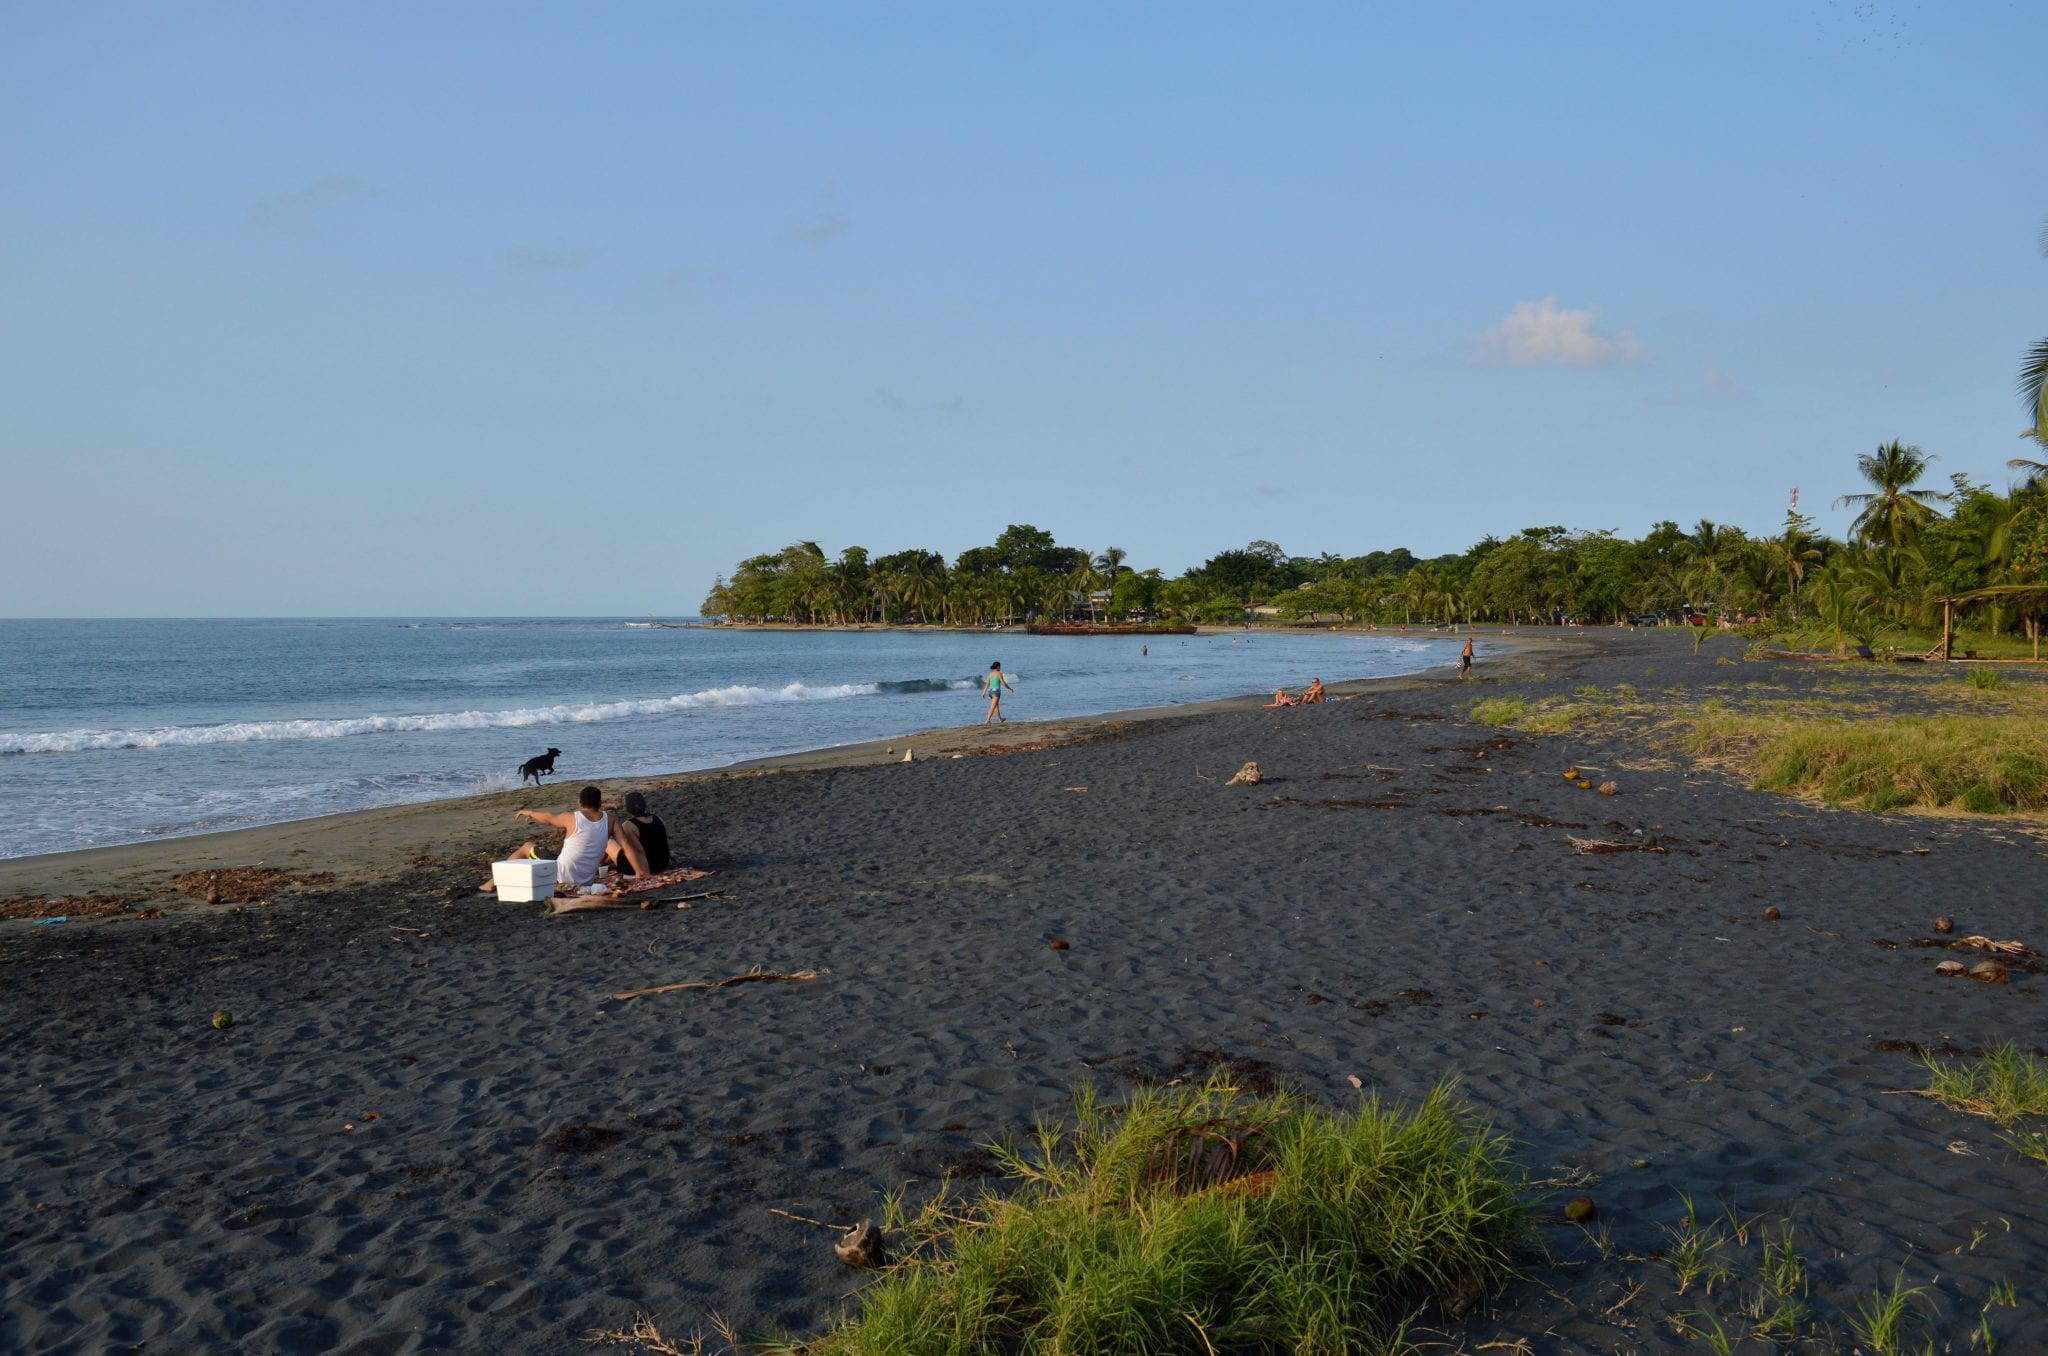 Puerto Viejo Costa Rica – Top 5 things to do